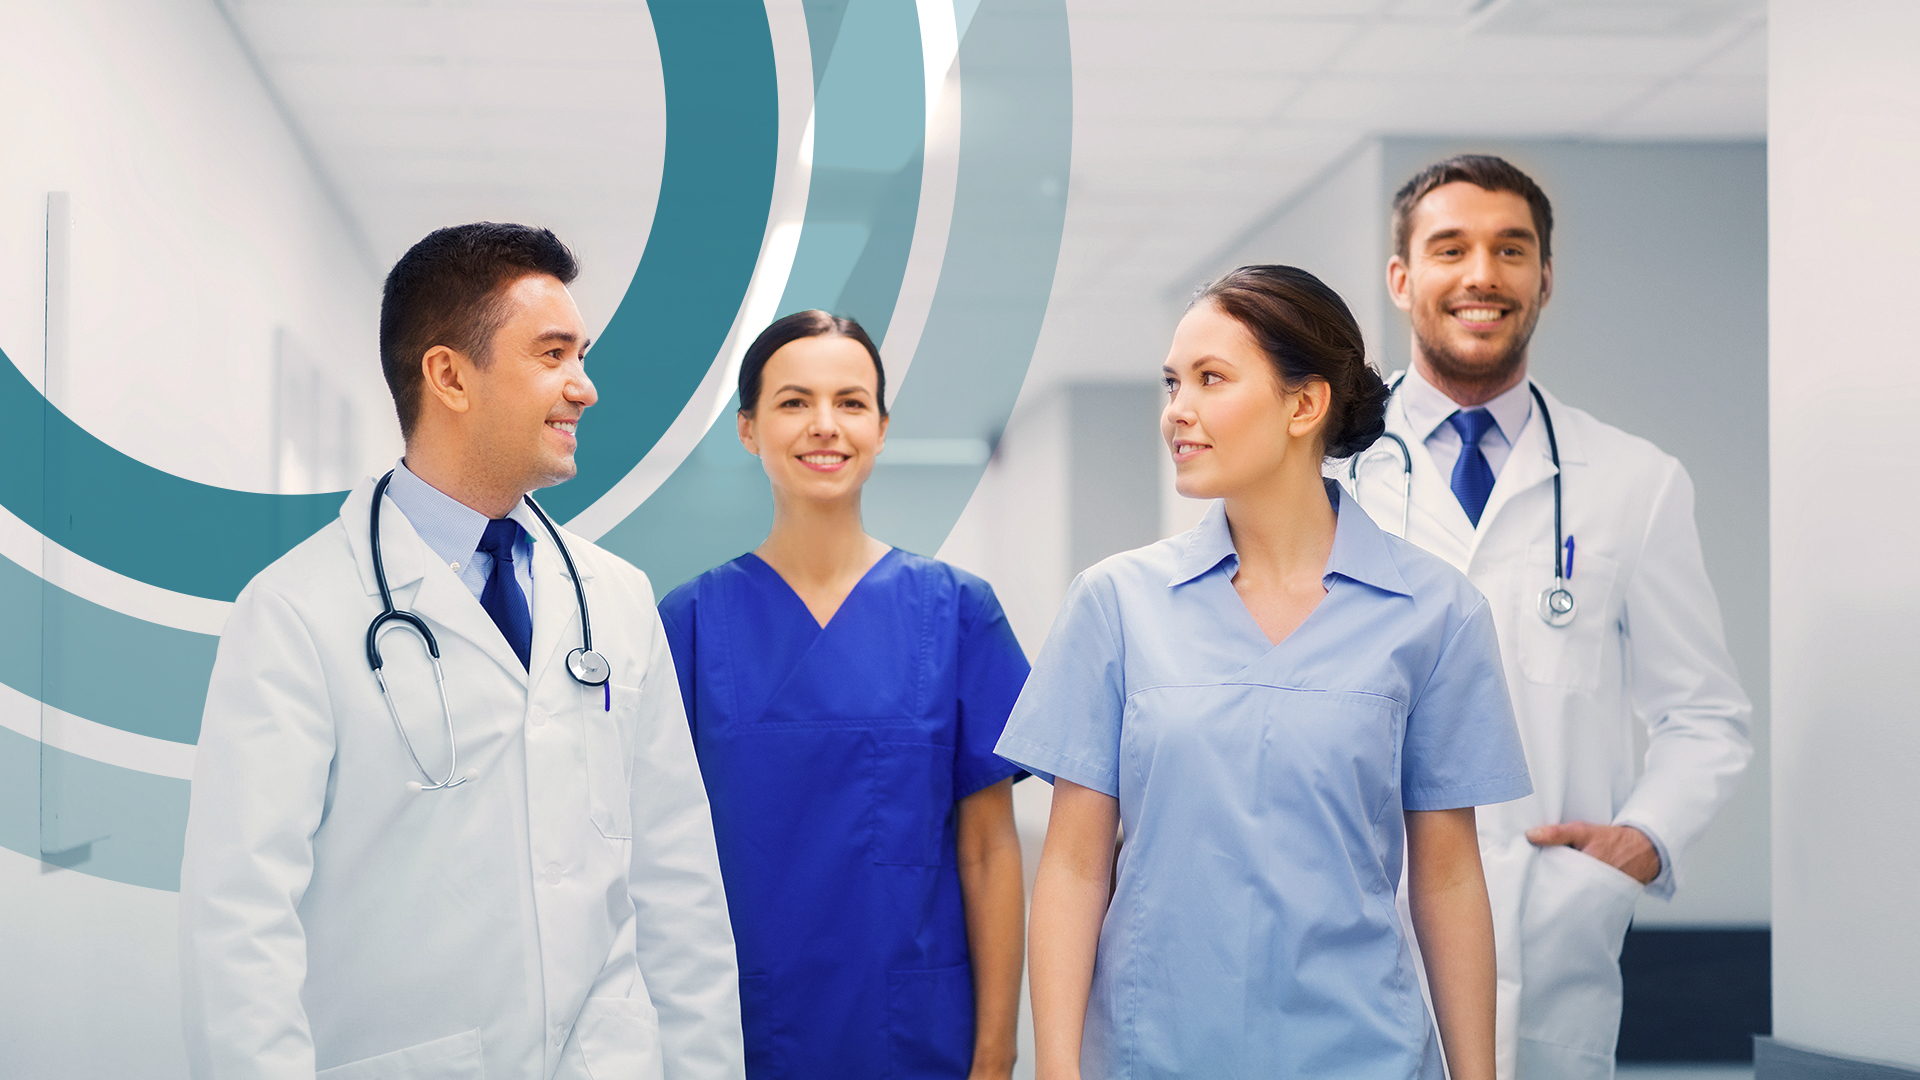 Leveling the Information Playing Field for Physician Compensation